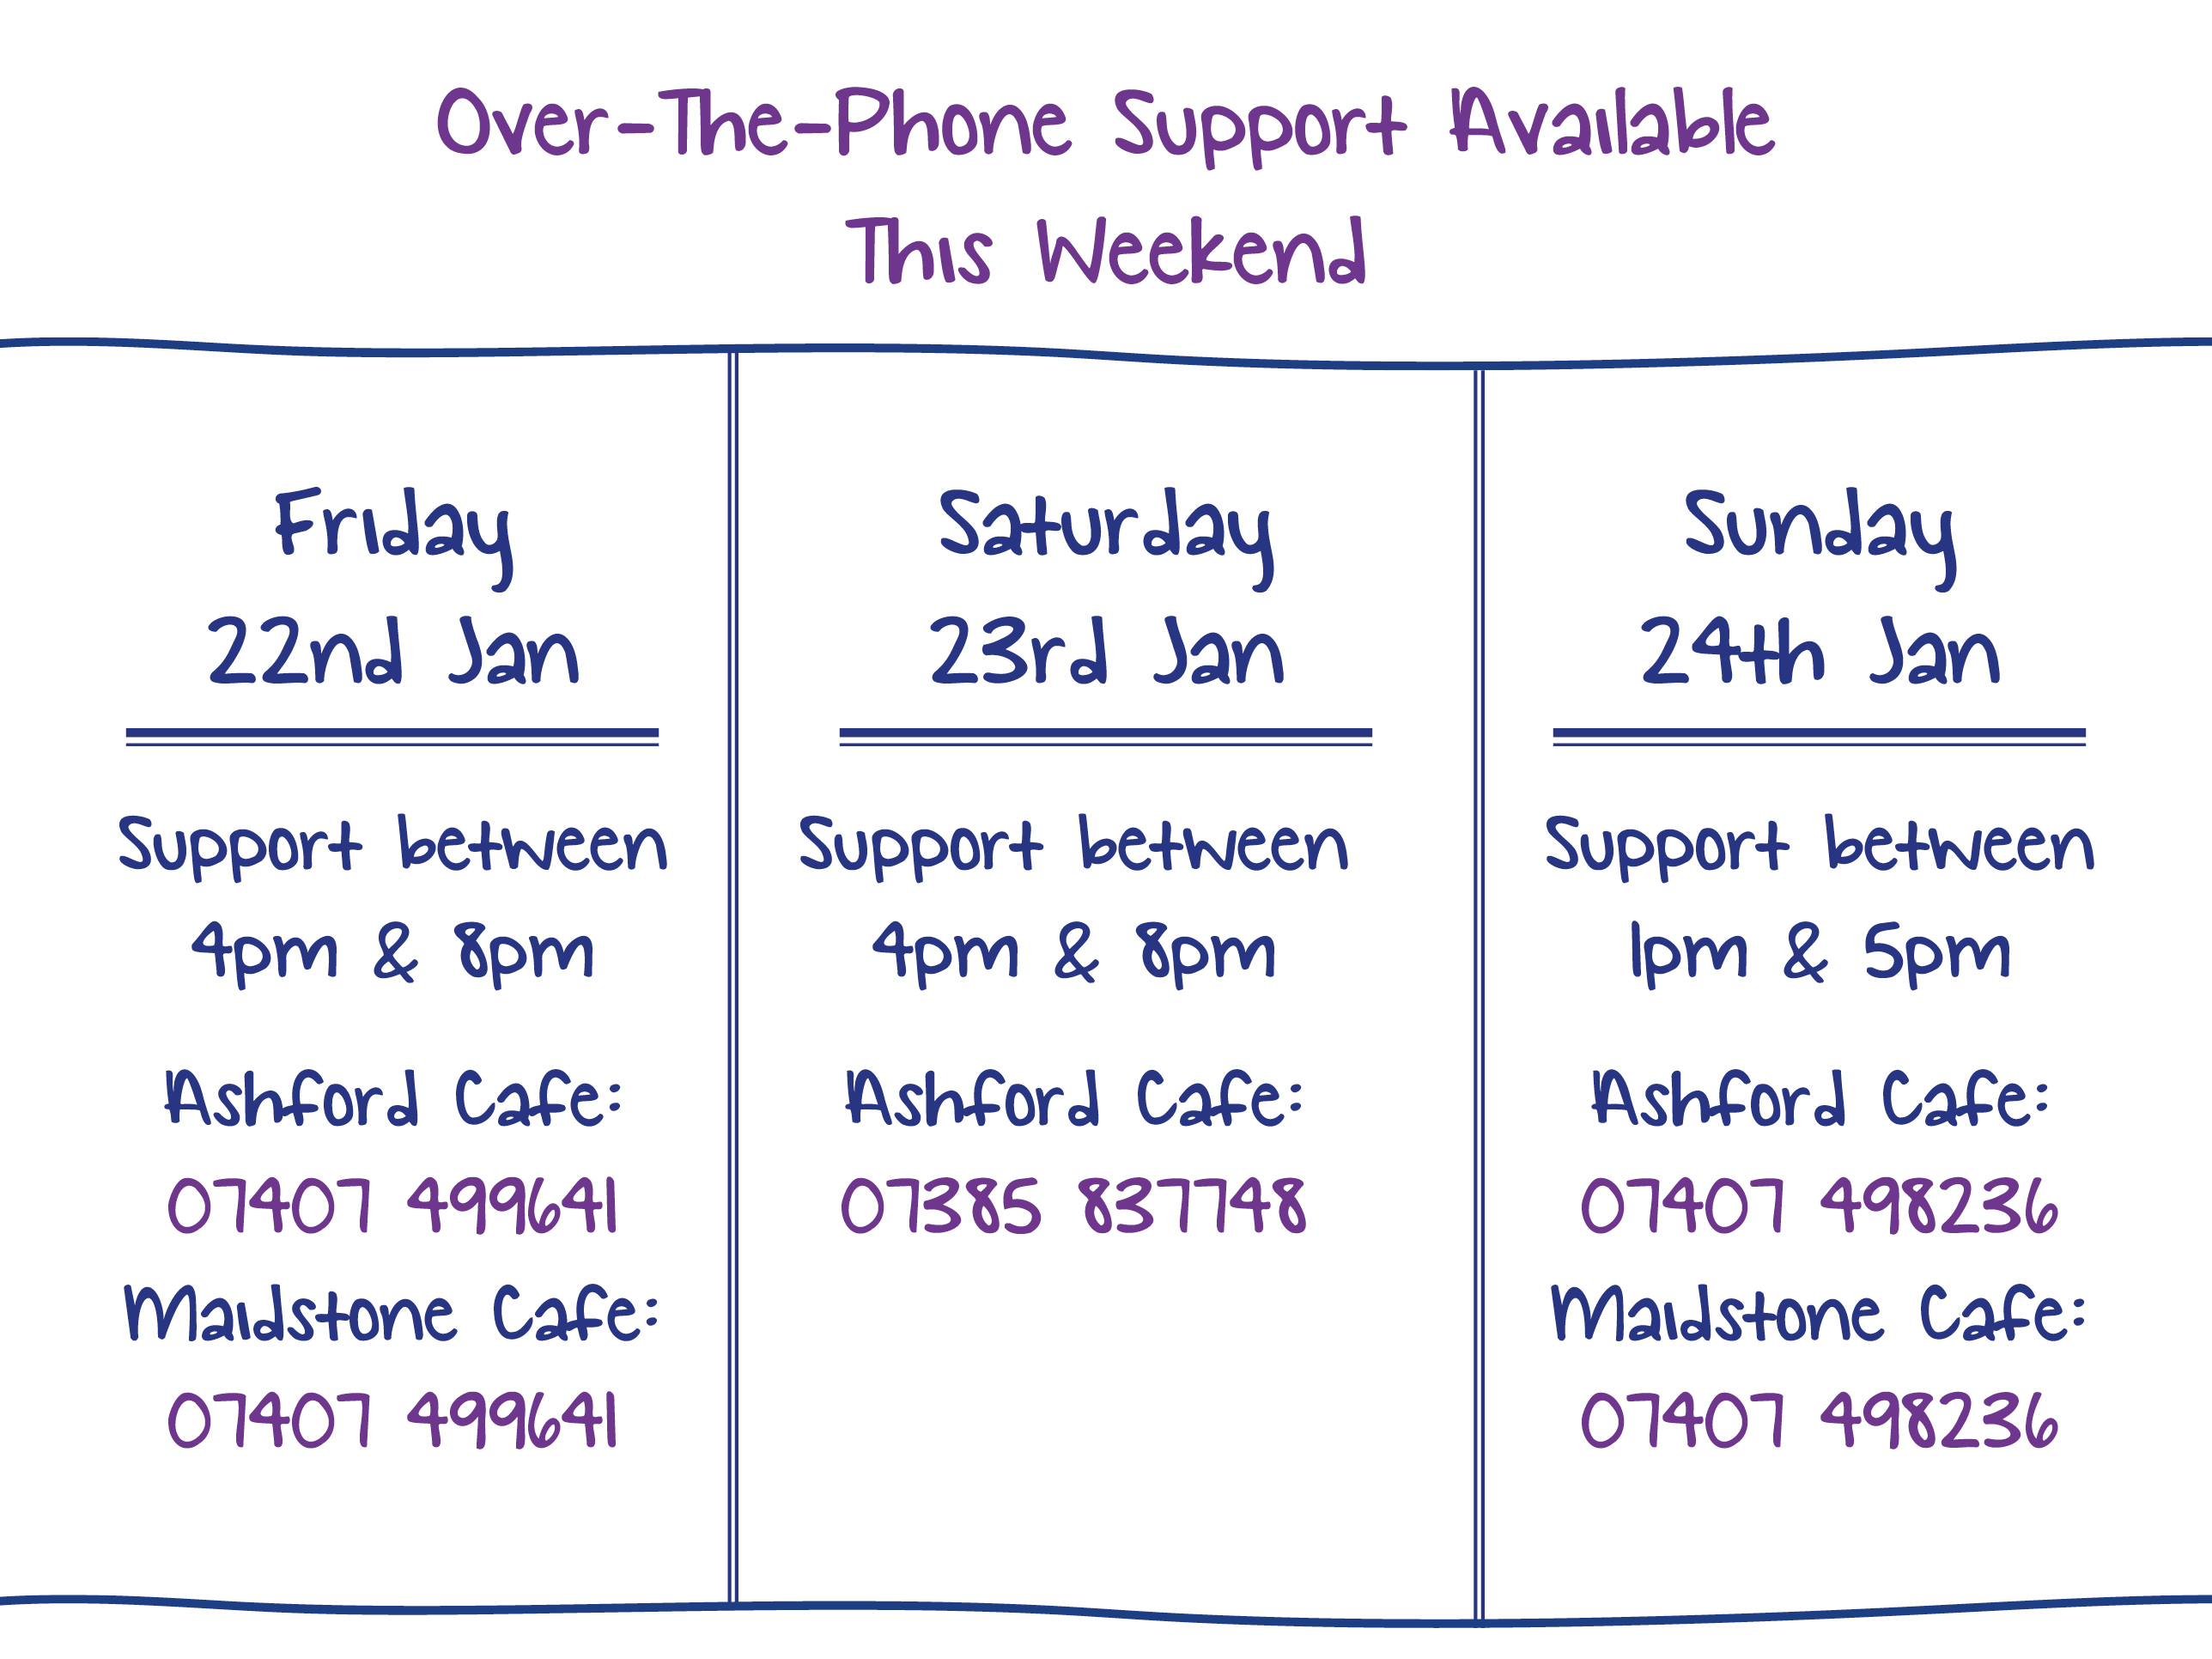 Over-The-Phone Support Available This Weekend. Friday 22nd Jan. Support between 4pm & 8pm Ashford Cafe: 07407 499641 Maidstone Cafe: 07407 499641. Saturday 23rd Jan. Support between 4pm & 8pm Ashford Cafe: 07385 837748. Sunday 24th Jan. Support between 1pm & 5pm Ashford Cafe: 07407 498236 Maidstone Cafe: 07407 498236